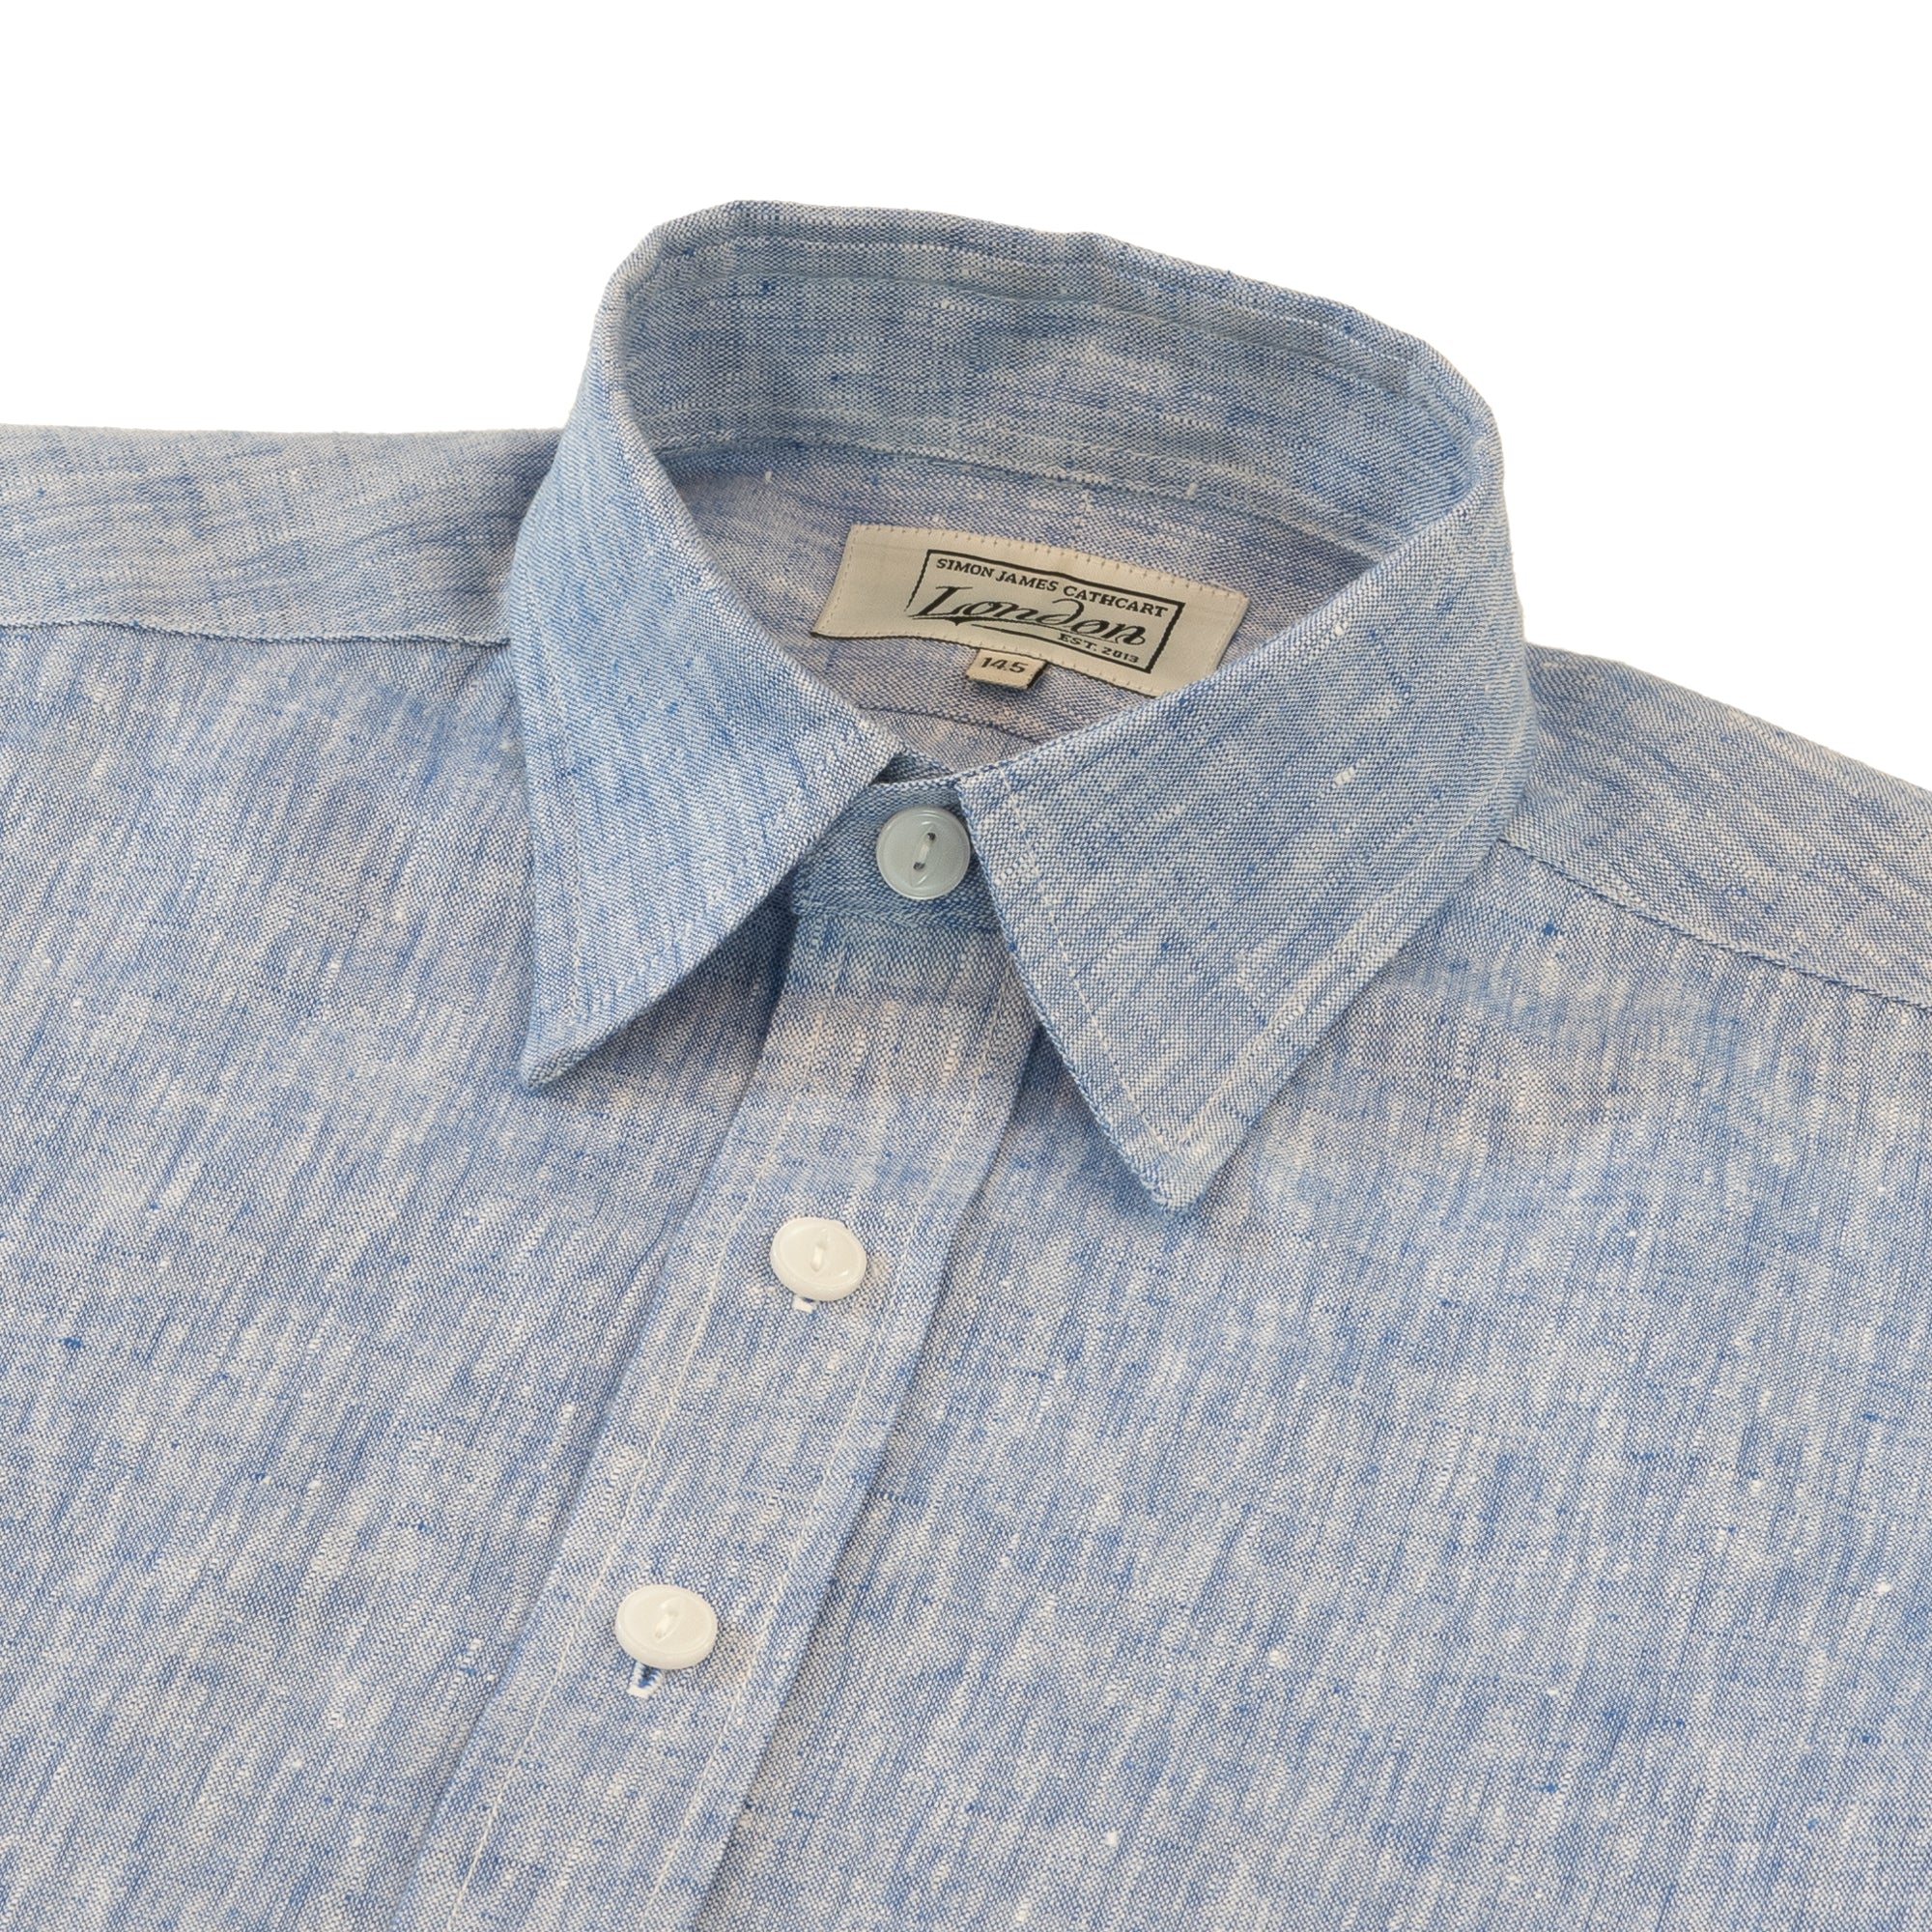 Cobalt Blue Elba Shirt